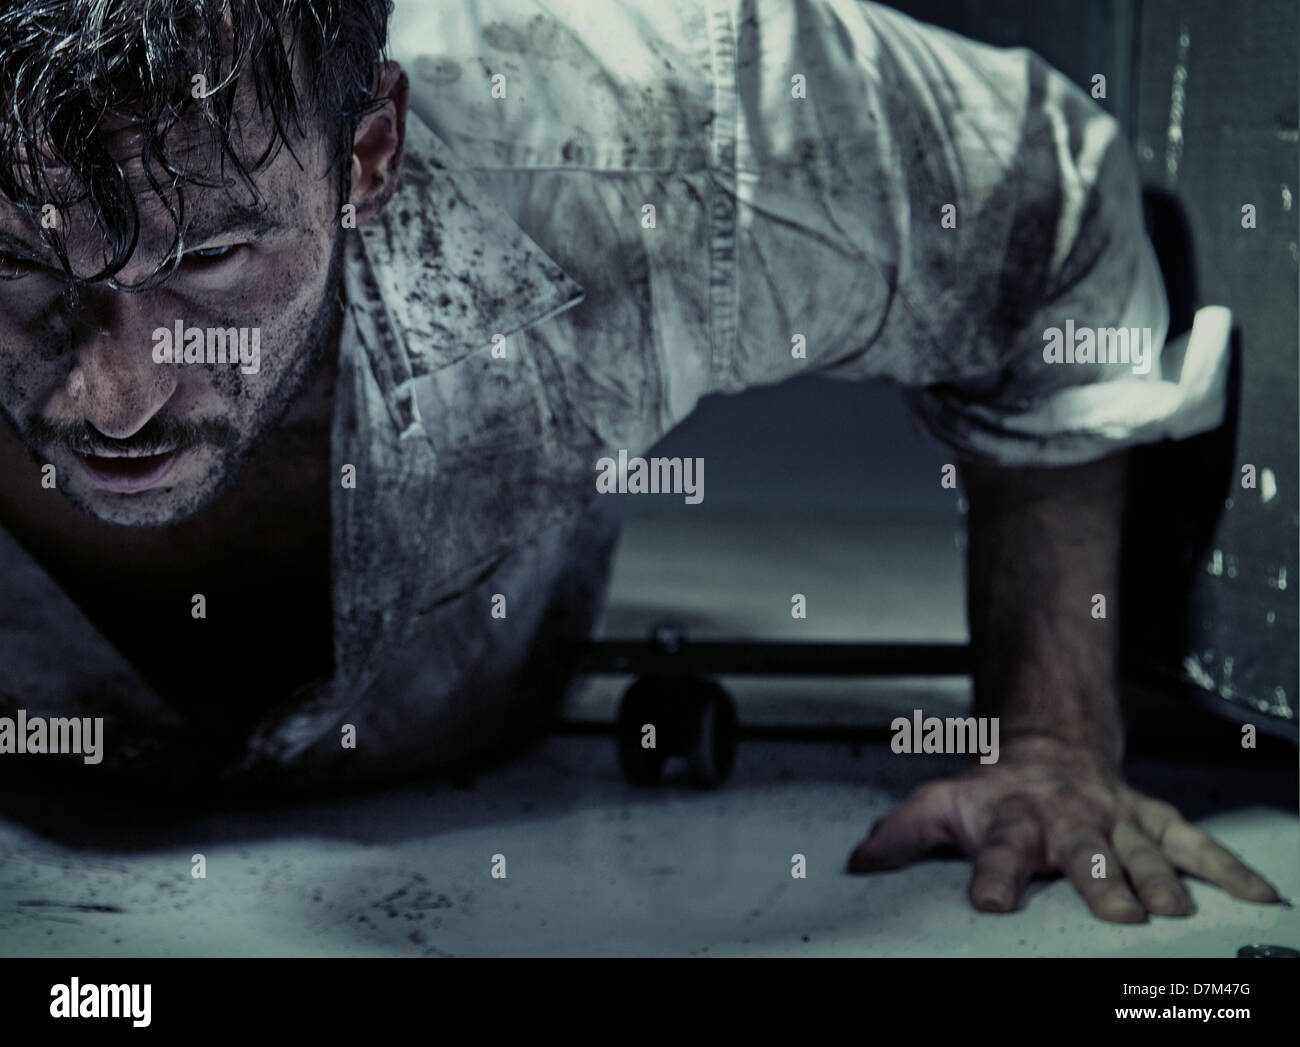 Dirty guy trying to get up - Stock Image